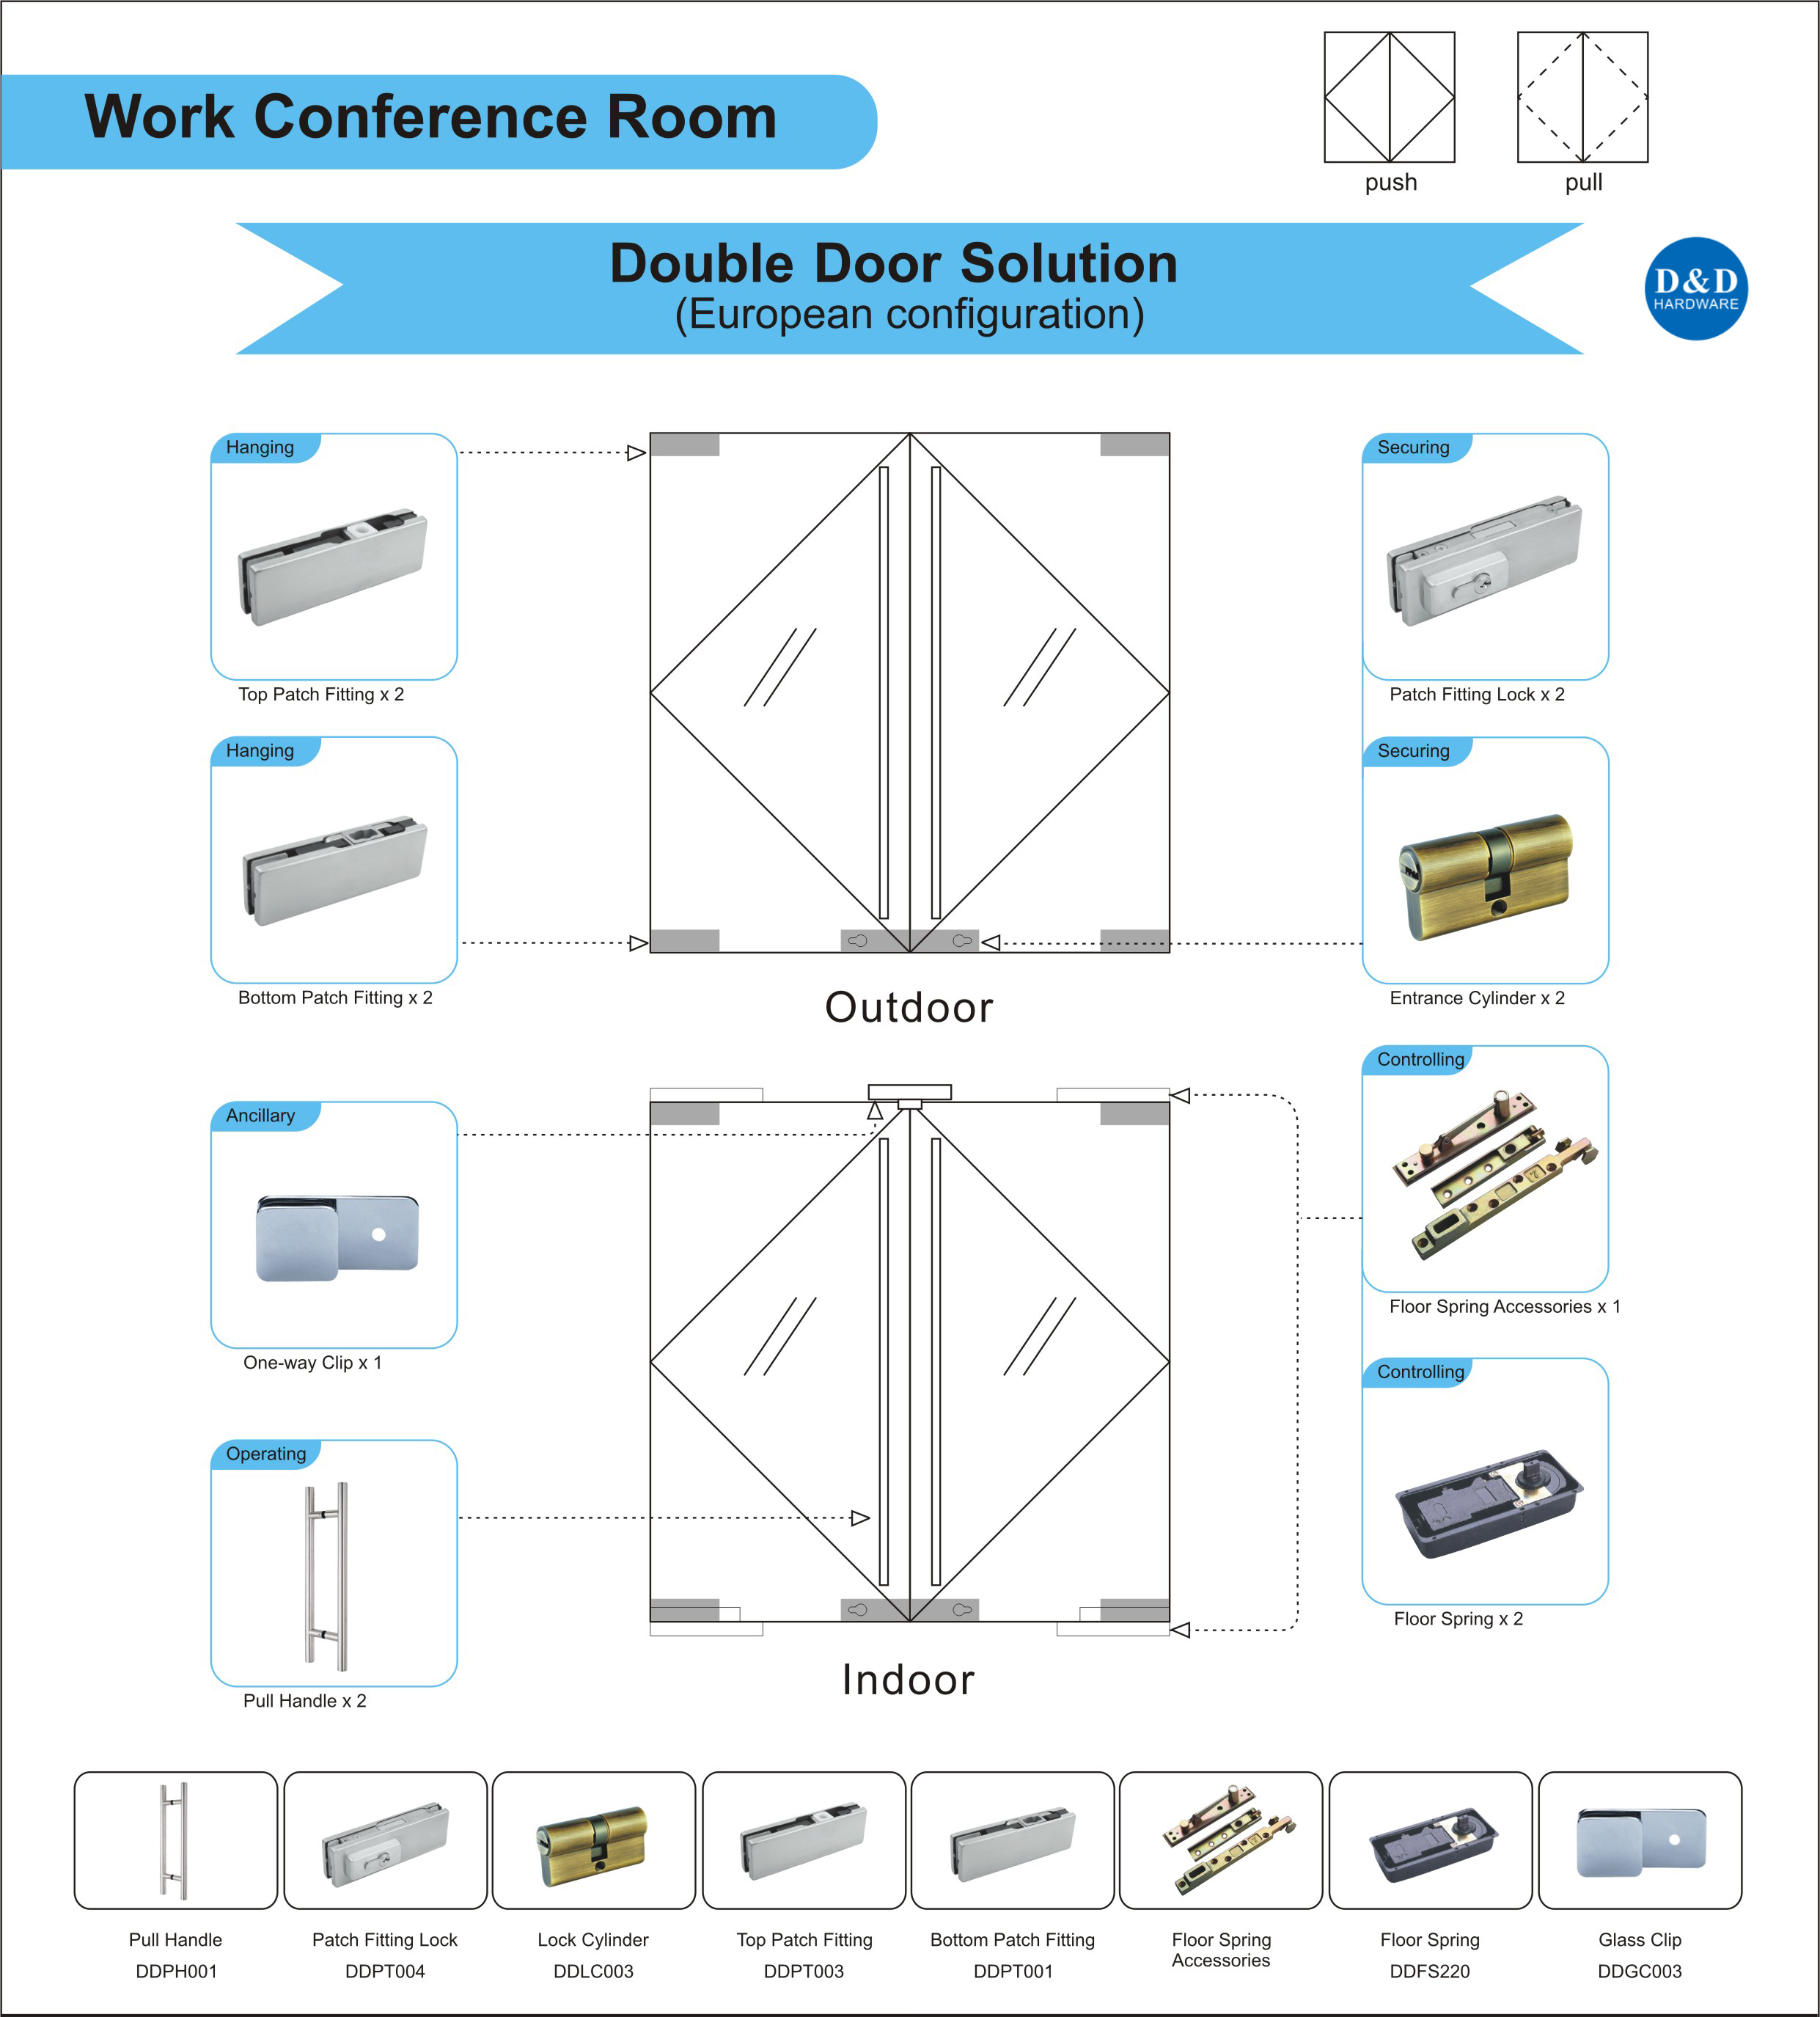 Glass door ironmongery for work conference room double door dd dd hardware offers a wide range of security door hardware options for work conference room double door that helps the building to solve several safety planetlyrics Gallery